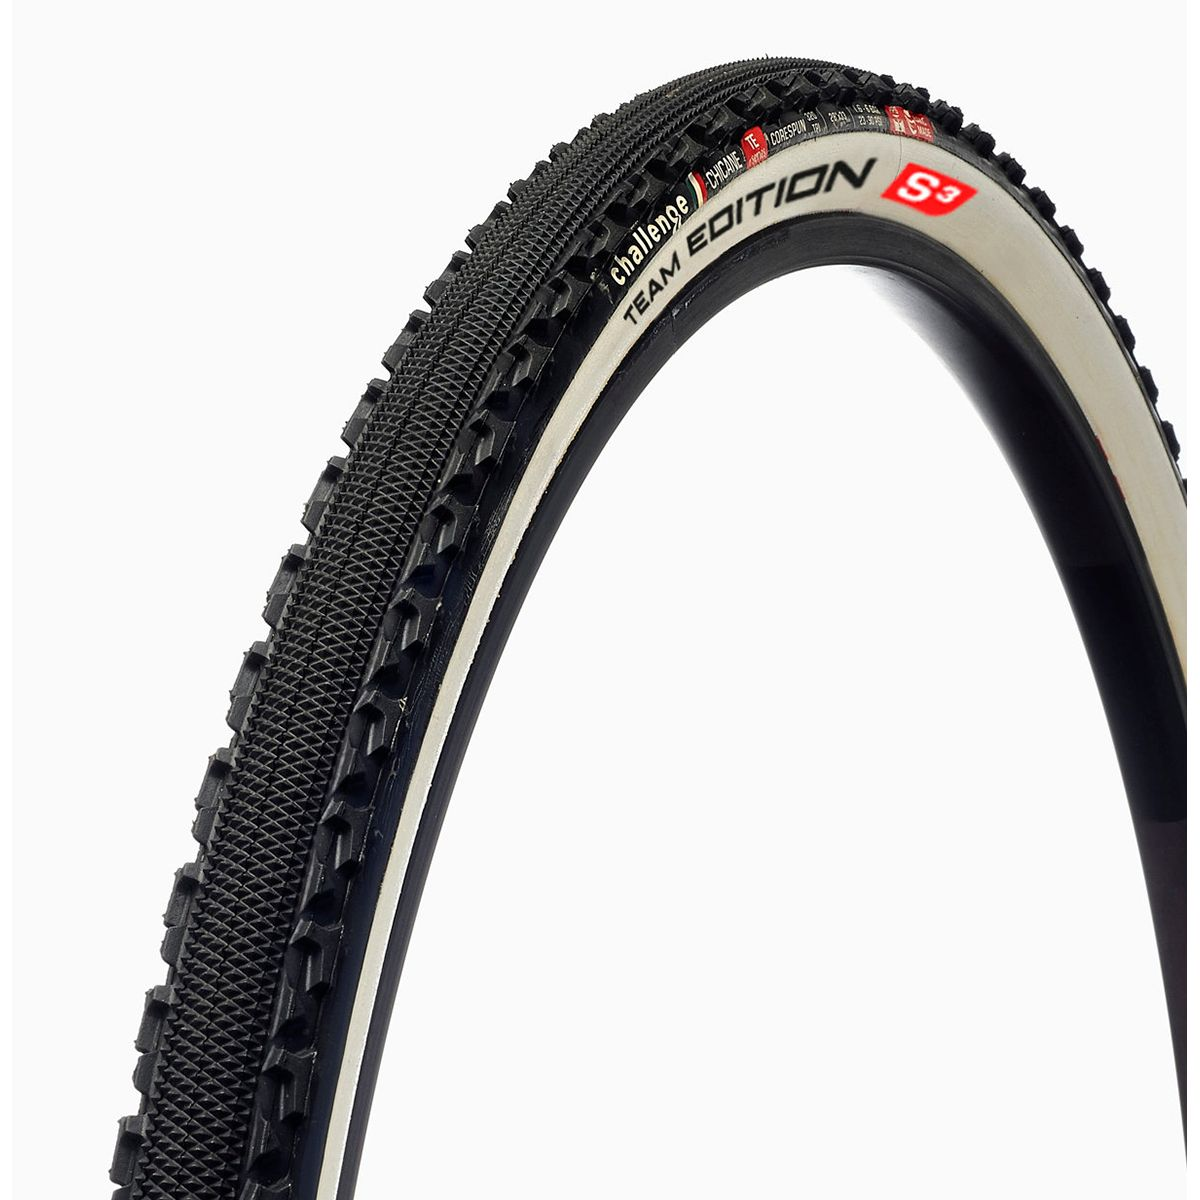 Chicane Team Edition S Tubular Cross Tyre